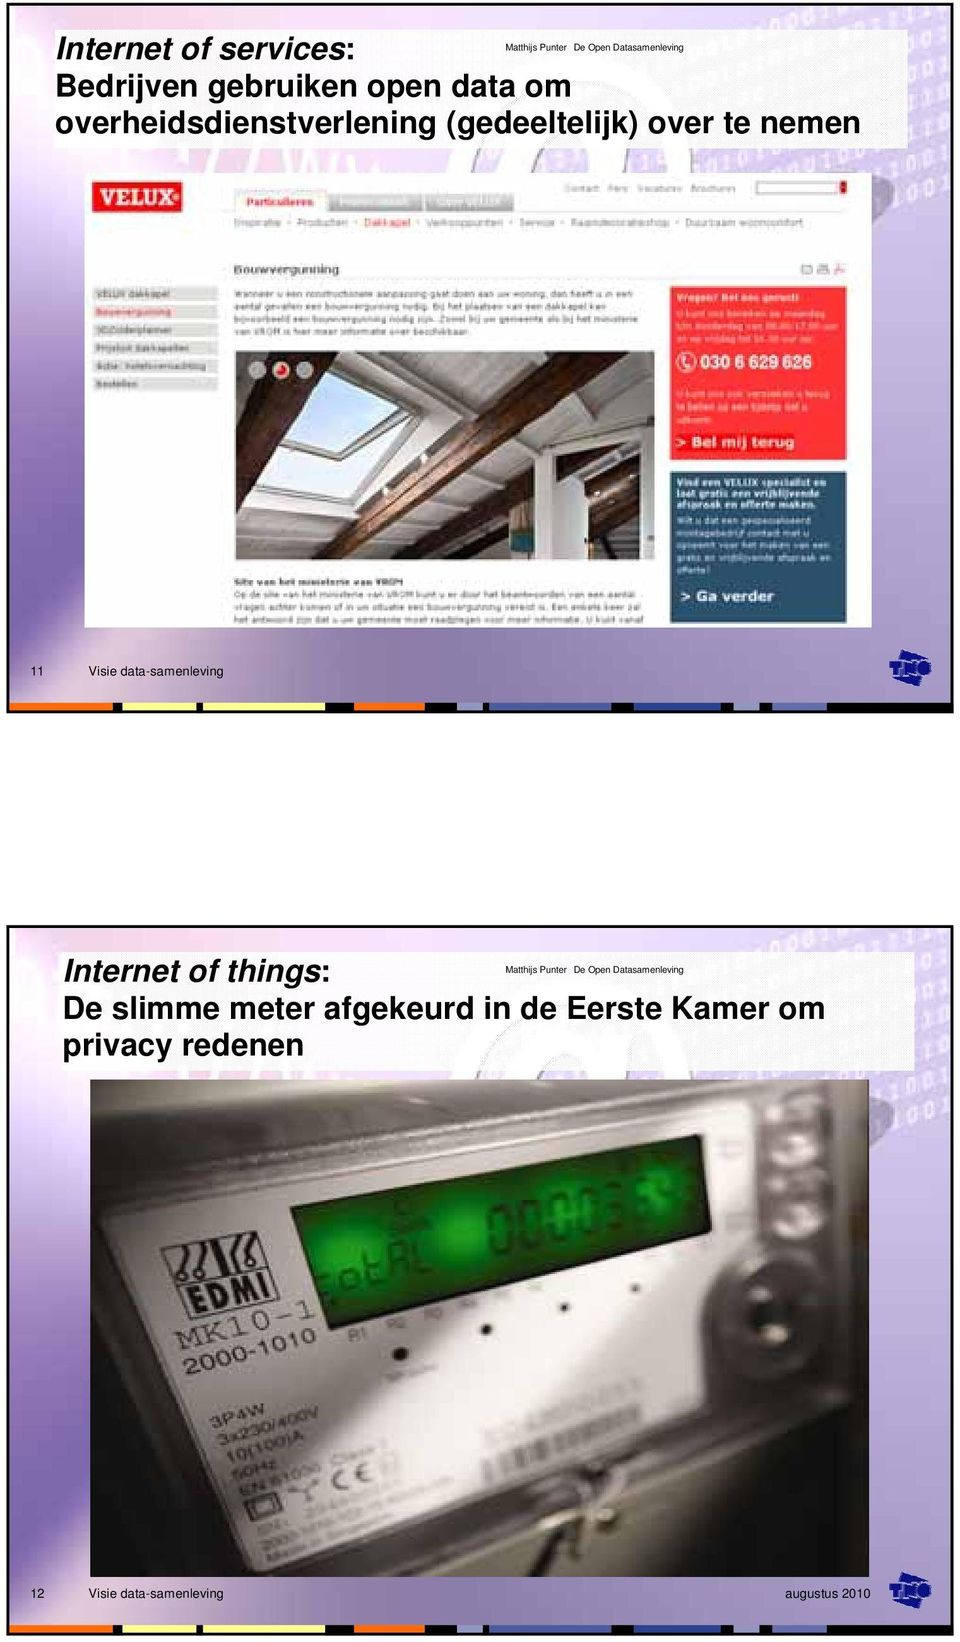 november 2010 Internet of things: De slimme meter afgekeurd in de Eerste Kamer om